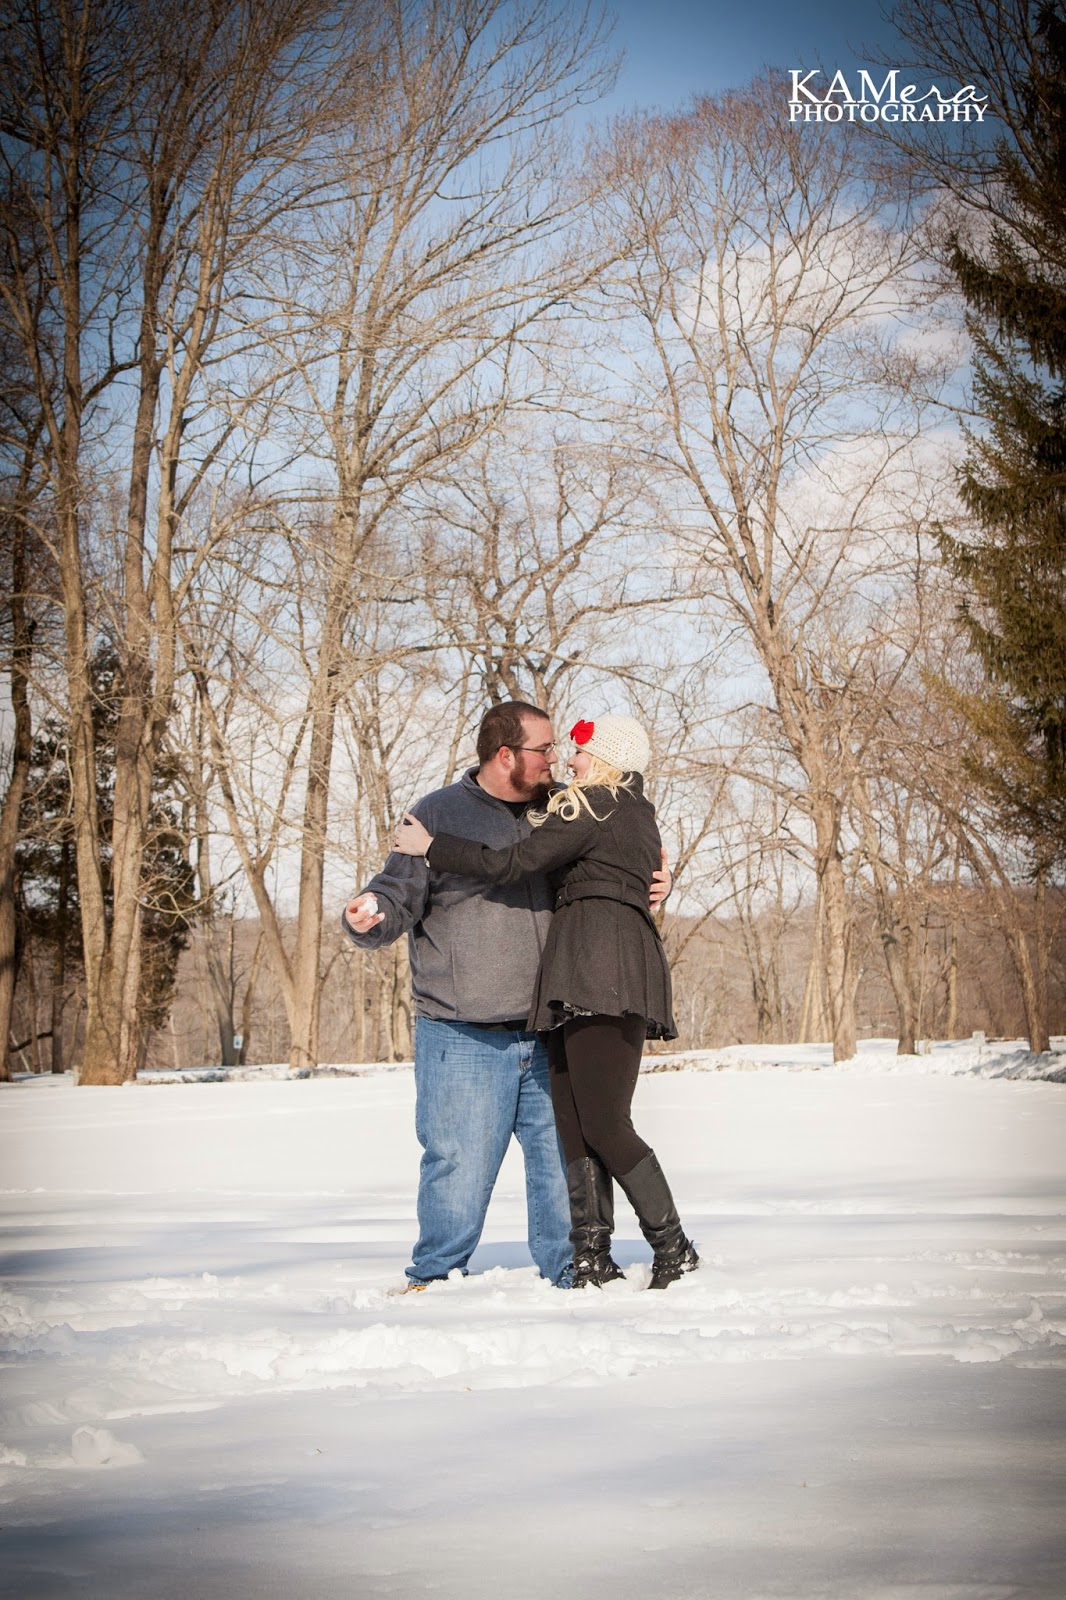 engagement makeup tutorial, beginners engagement makeup tutorial, KAMera Photography, KAMera photography engagement, philadelphia engagement, snowy engagement photos, winter engagement makeup, elegant makeup , simple makeup tutorial, KAMera photography Philadelphia, KAMera photography engagement, KAMera photography testimony, KAMera photography engagement testimony, KAMera photography snowy photos, KAMera photography happy couple, KAMera photography Philadelphia wedding photos, KAMera photography wedding photography,